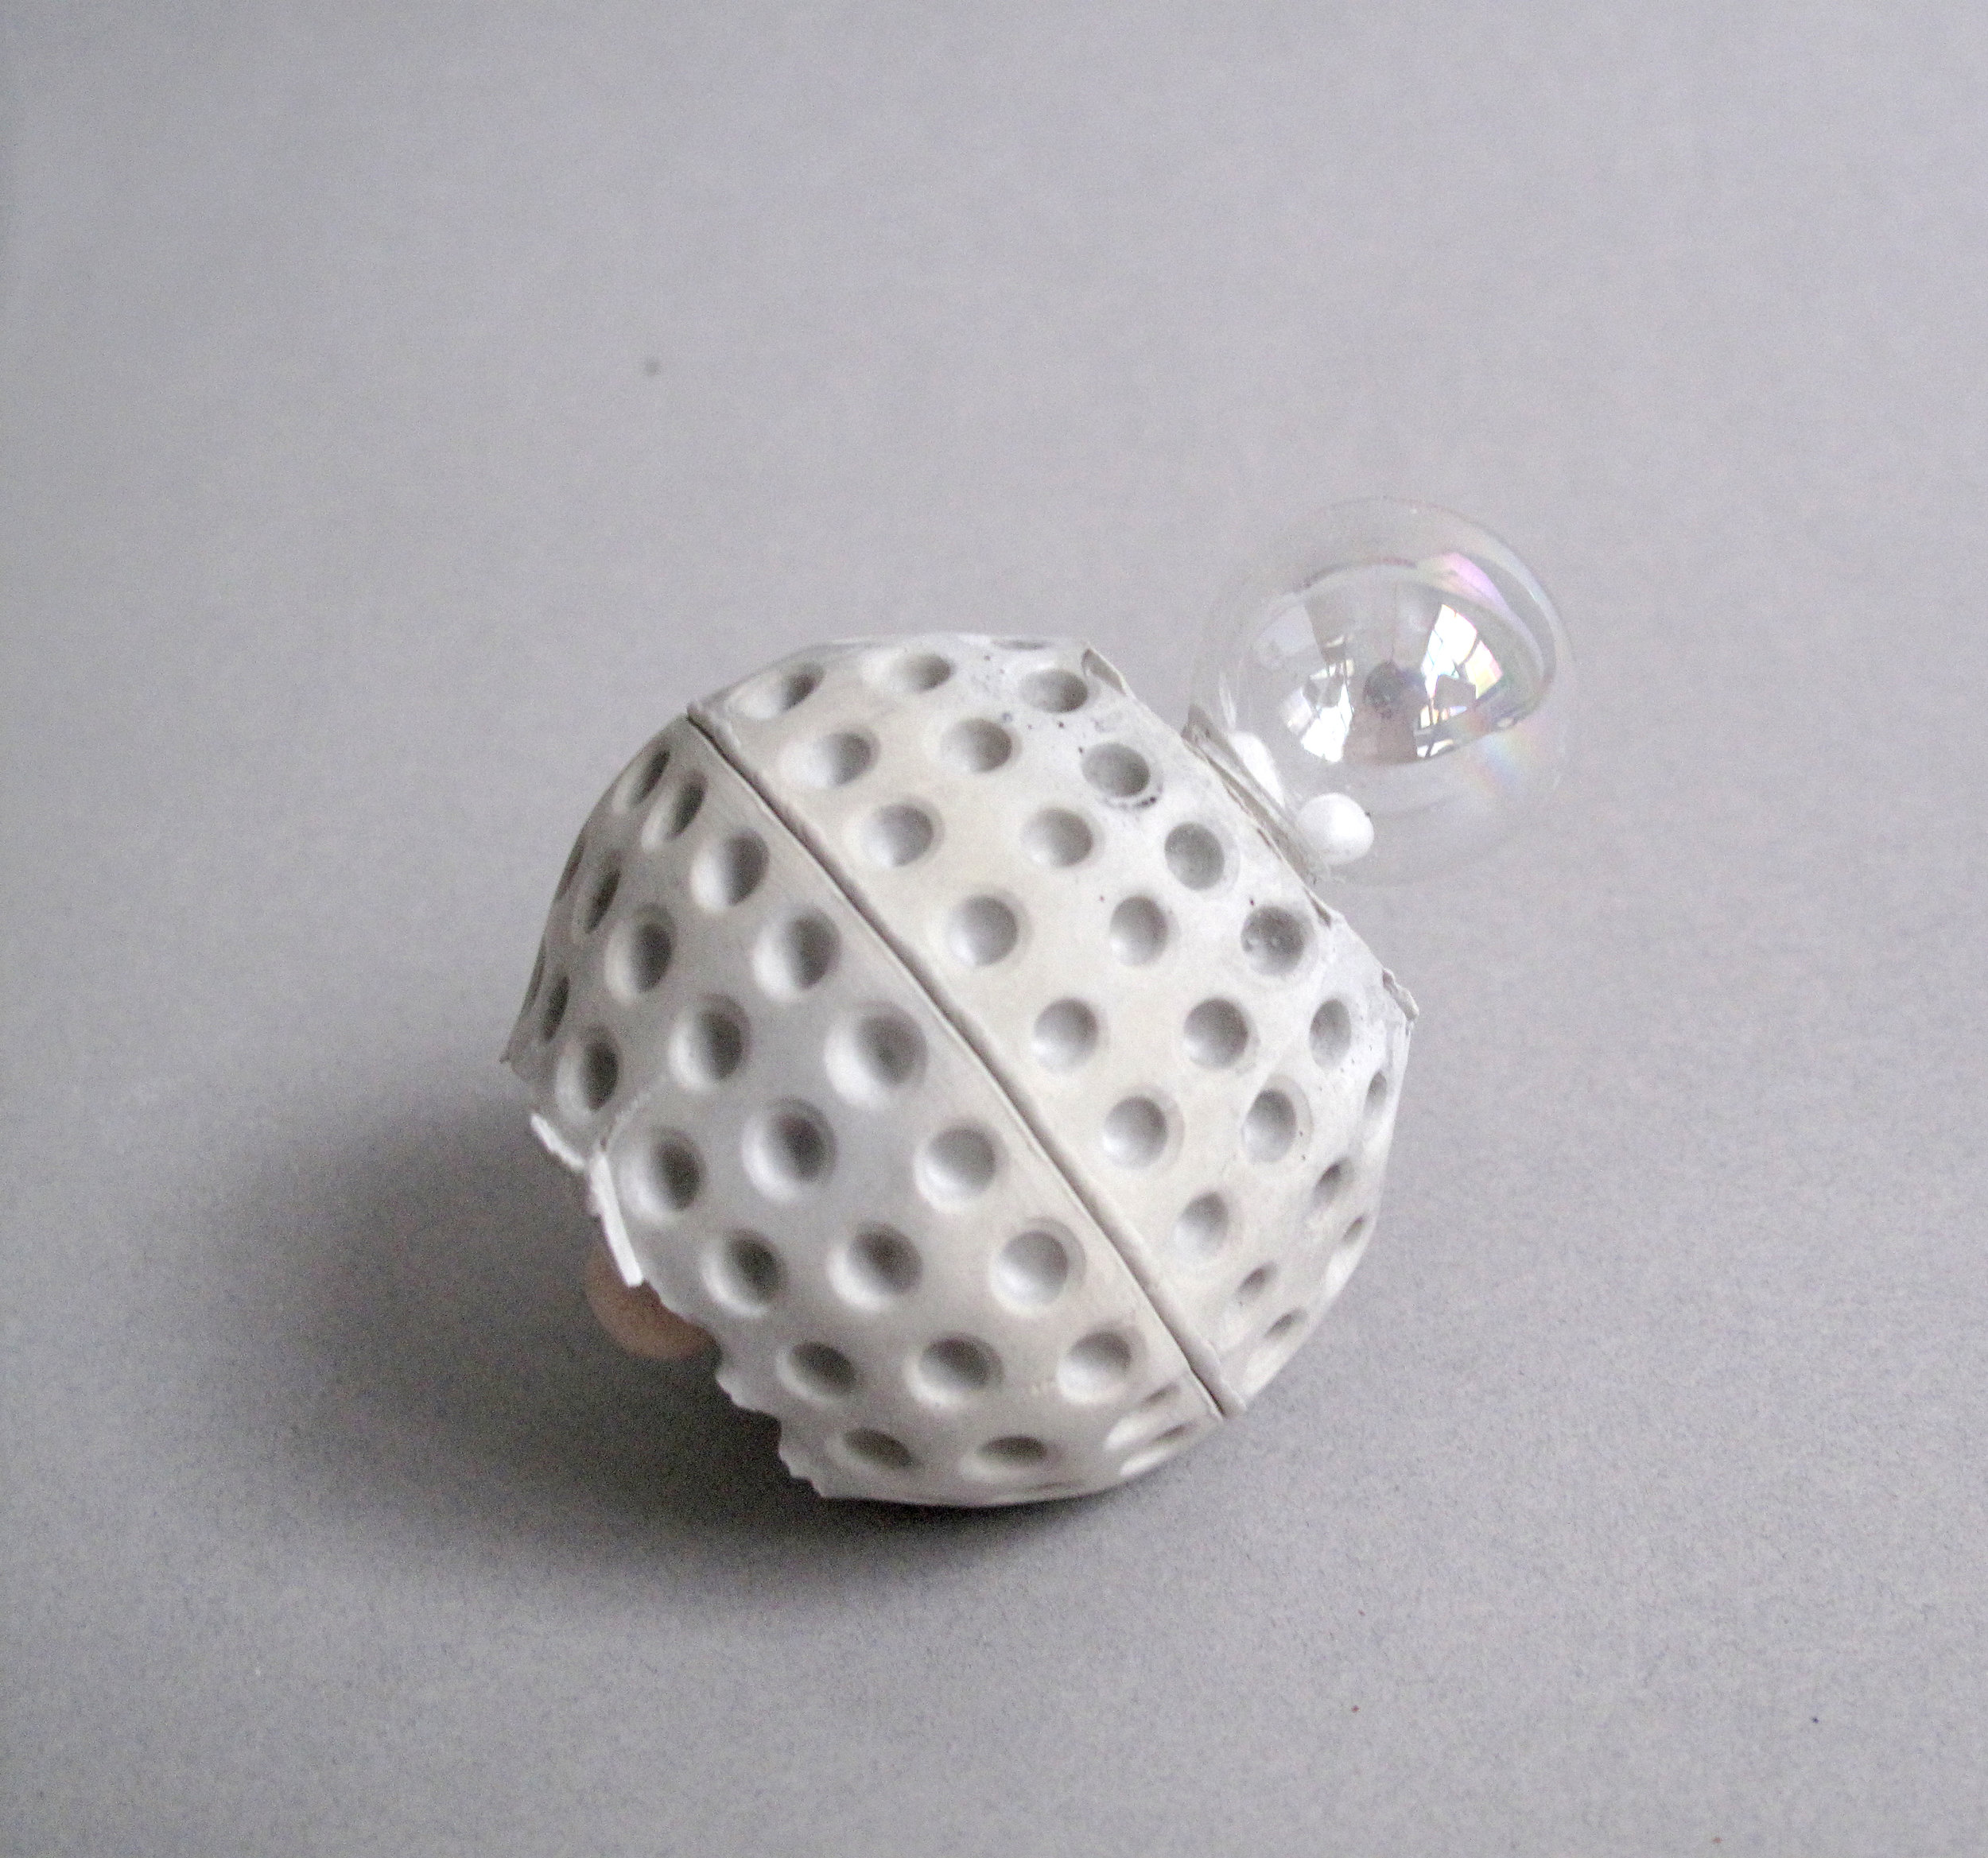 """Right Ascension     Rockite Cement, Wood Bead, Glass Sphere, Styrofoam Ball - 2.75"""" x 3"""" x 2.25"""""""